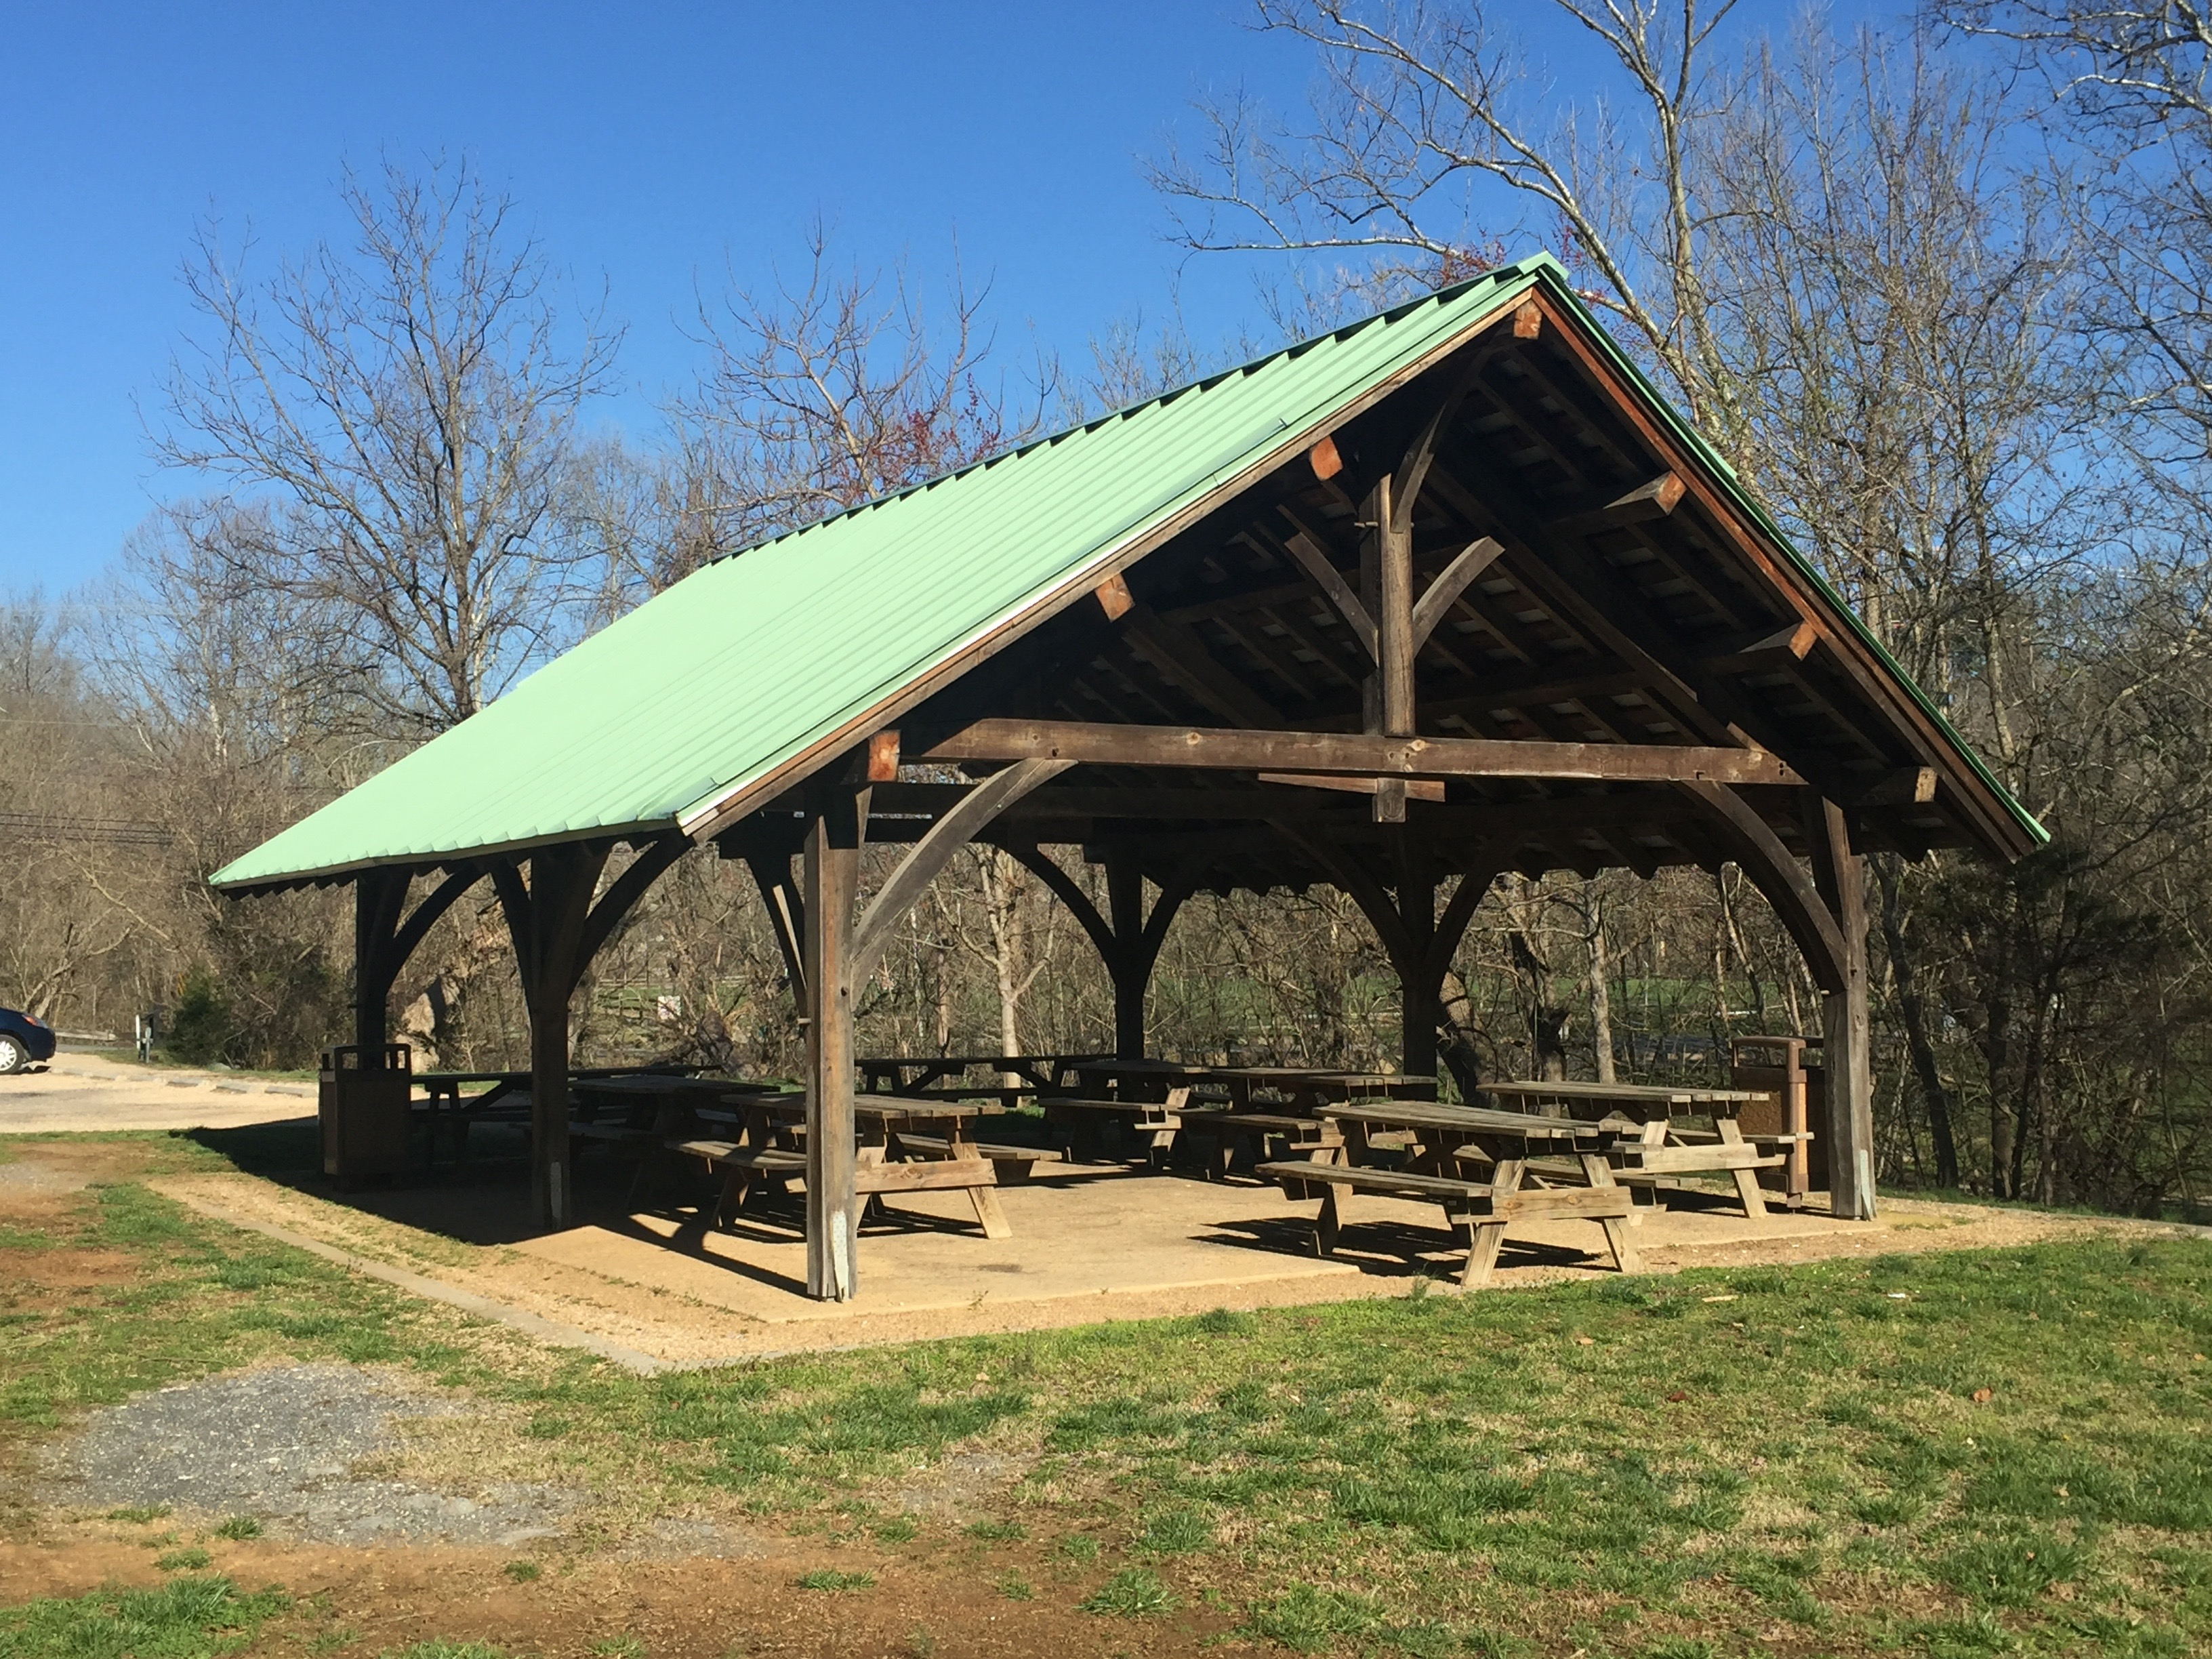 Jordan's Point Picnic Area